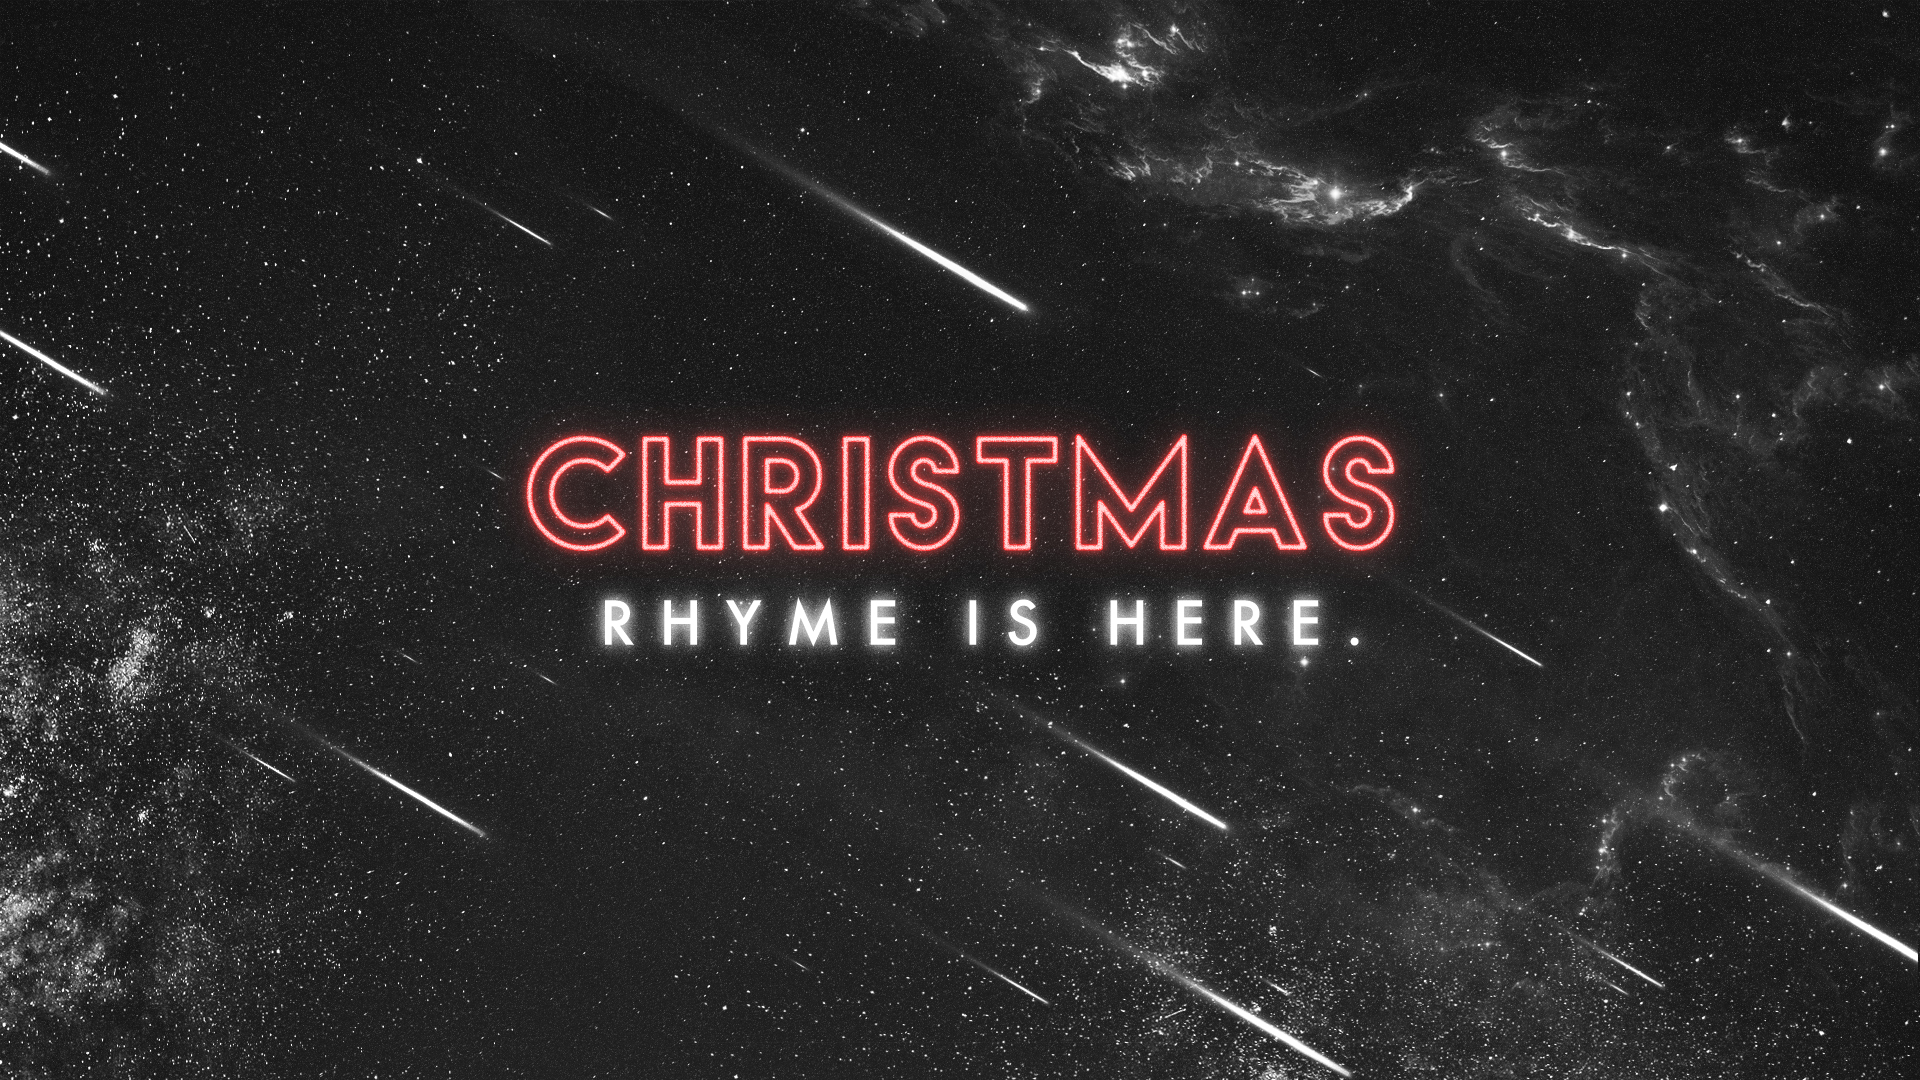 Christmas Rhyme Is Here